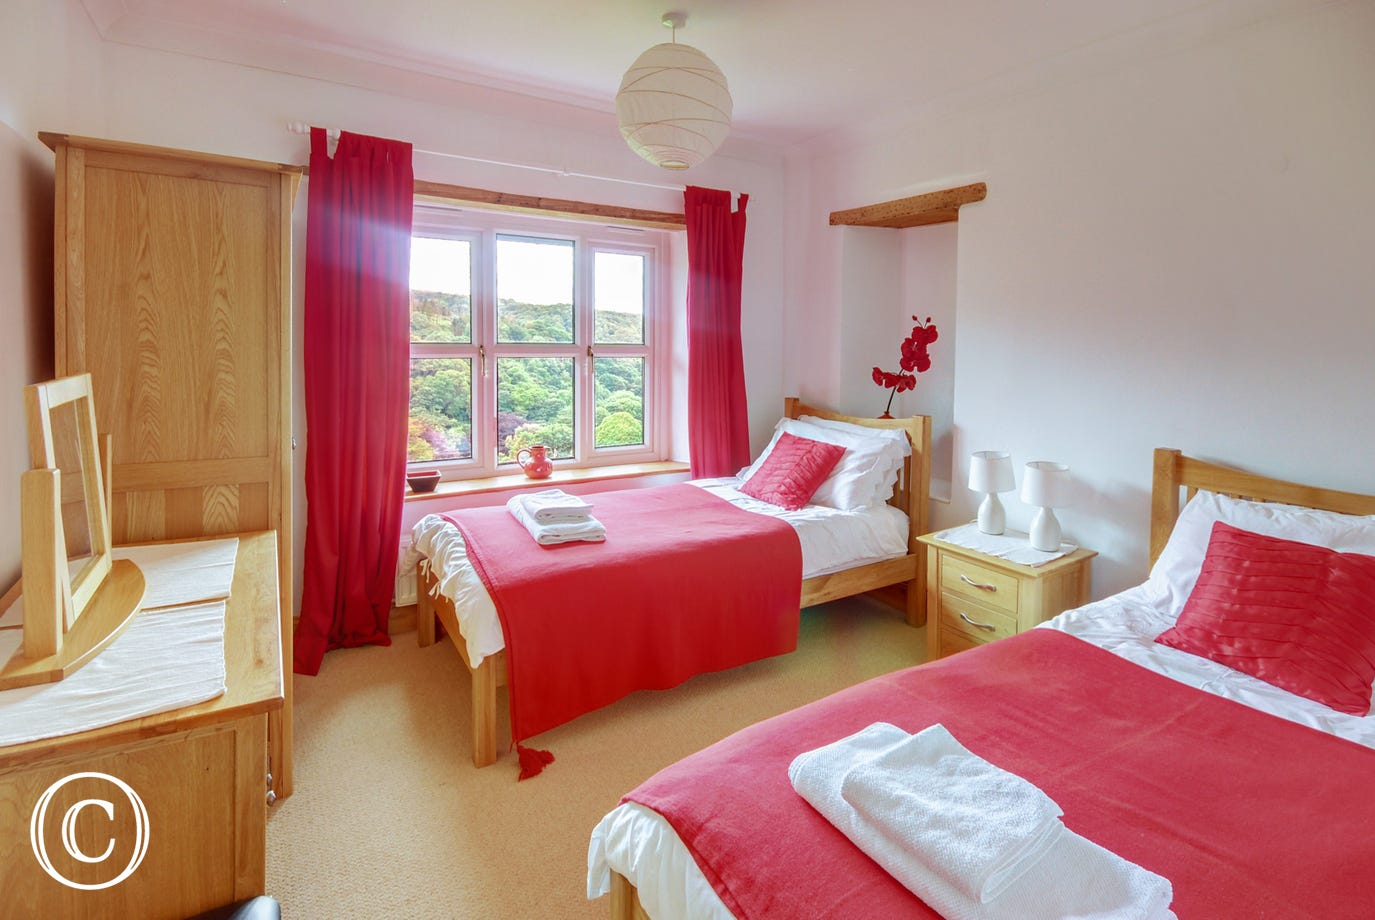 The twin bedroom is bright and cheerful with lovely views